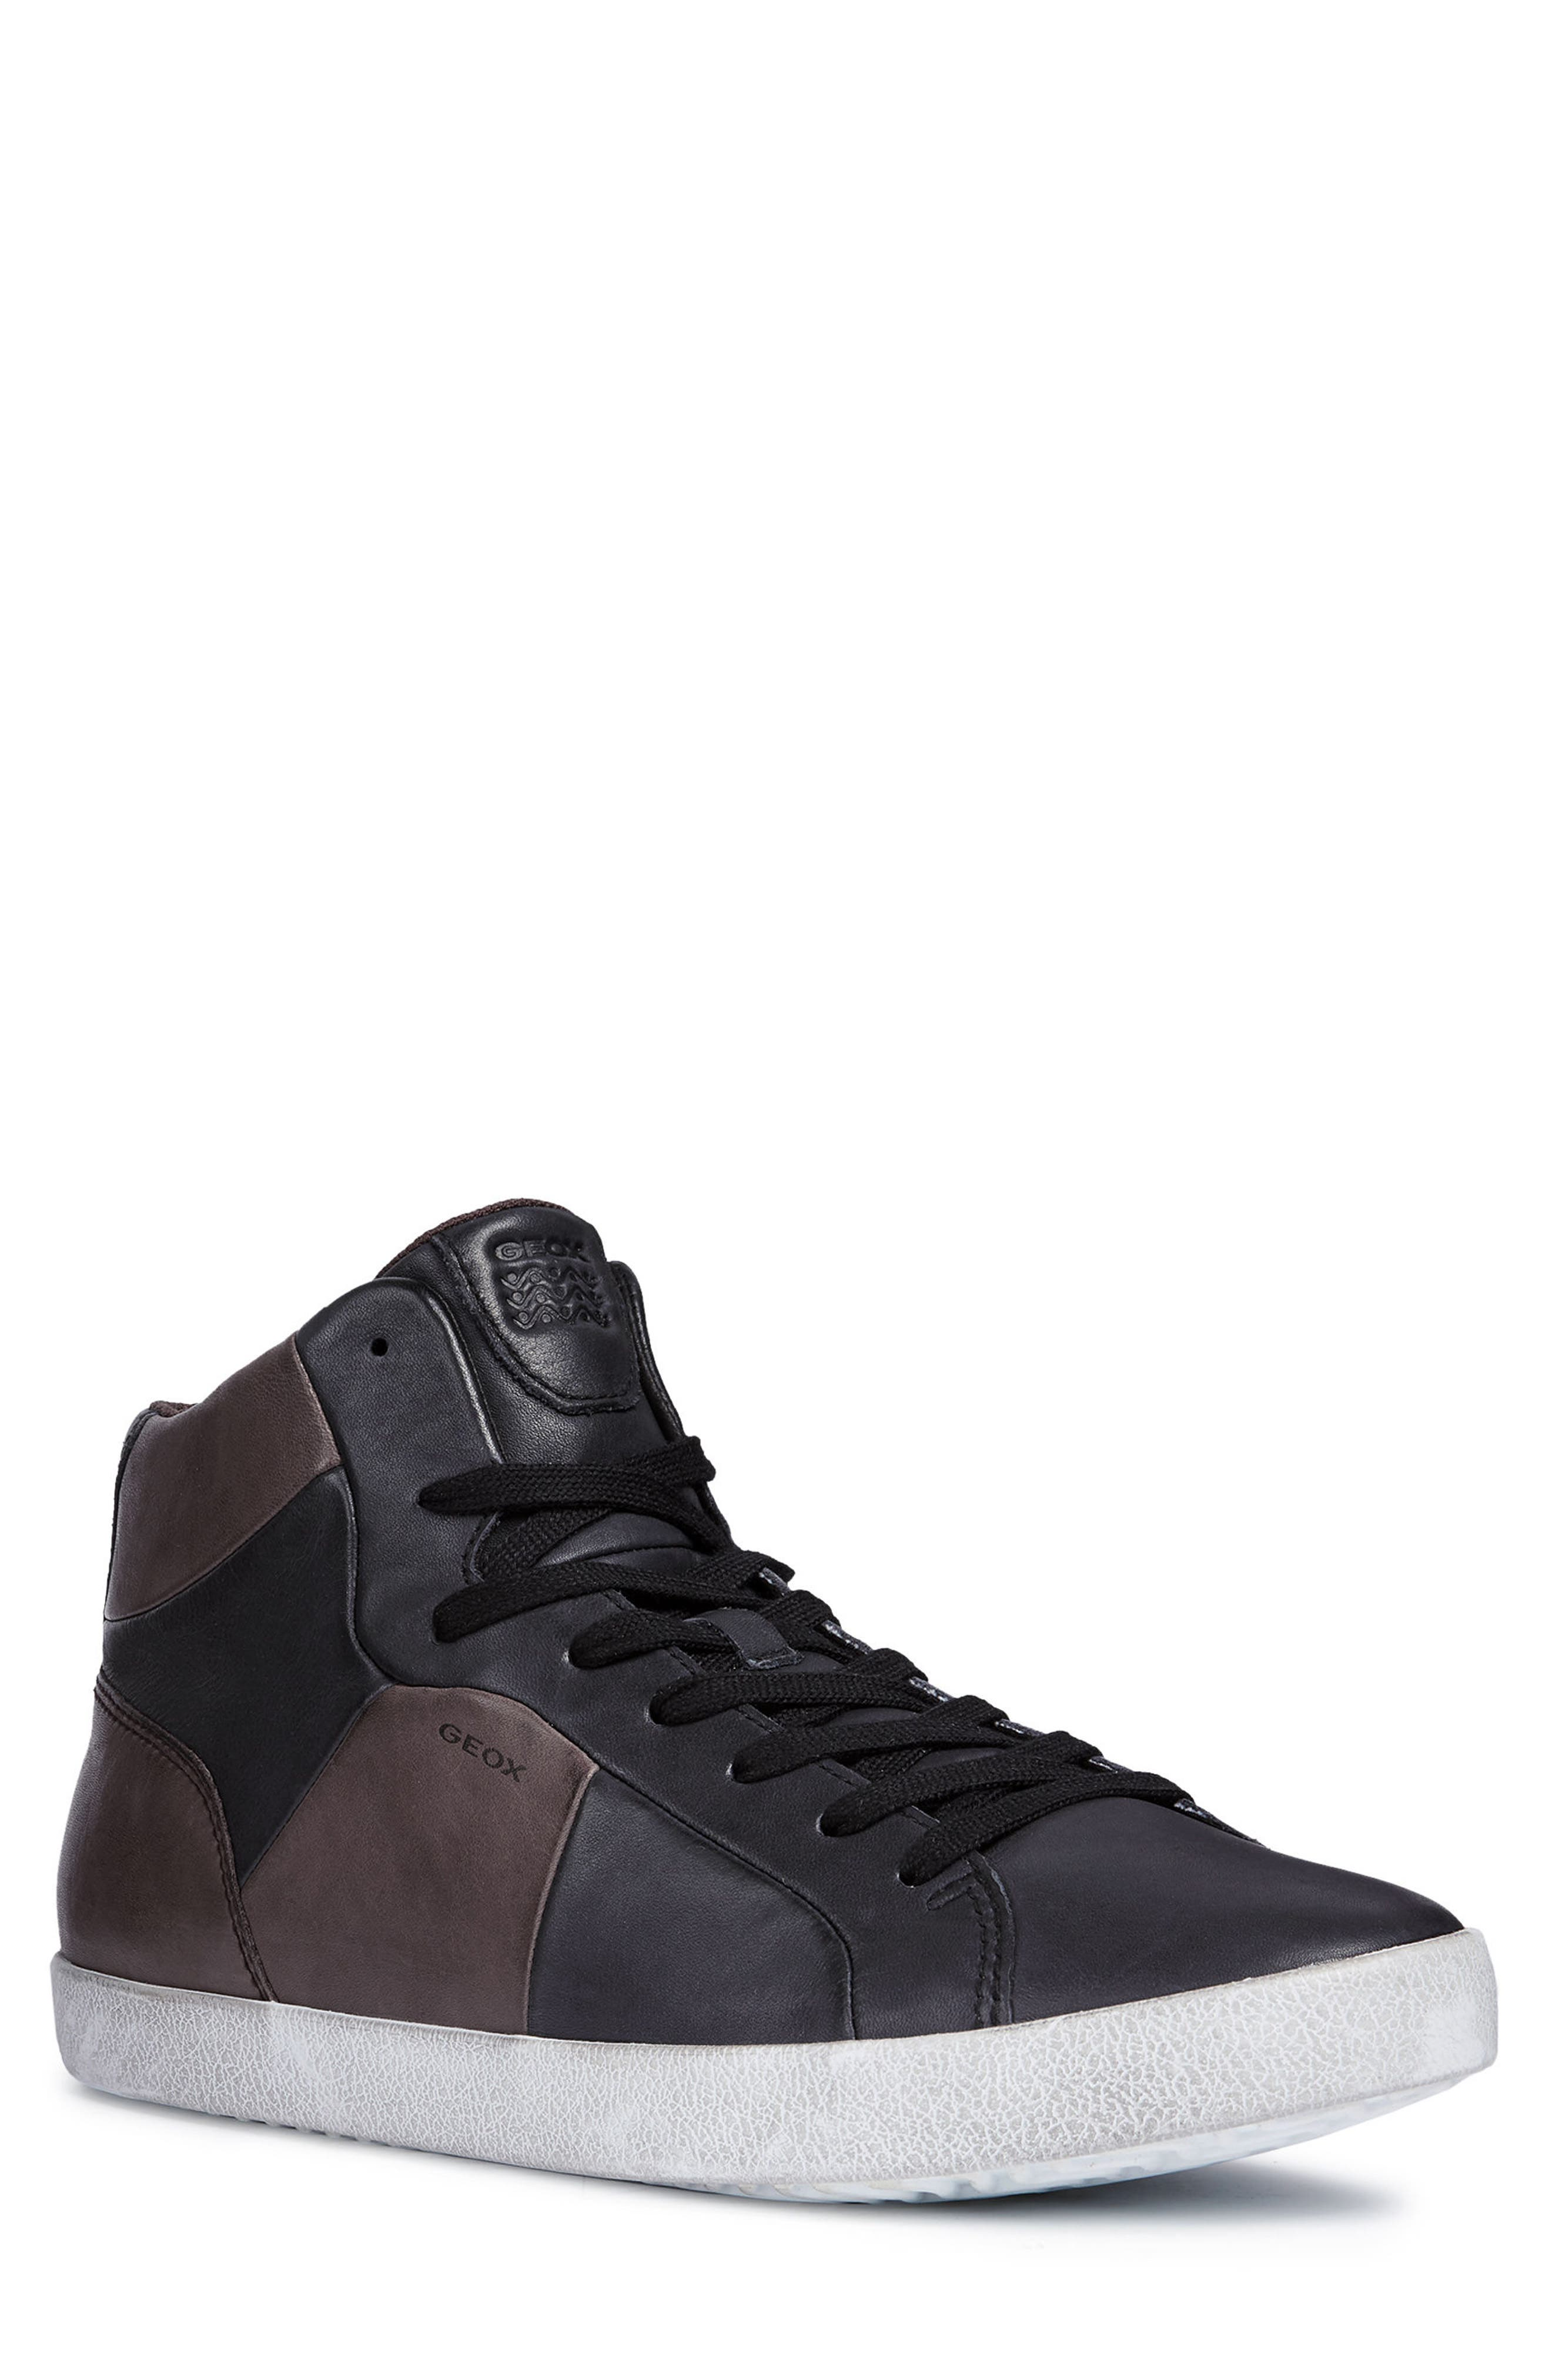 Smart 84 High Top Sneaker,                         Main,                         color, BLACK/ COFFEE LEATHER